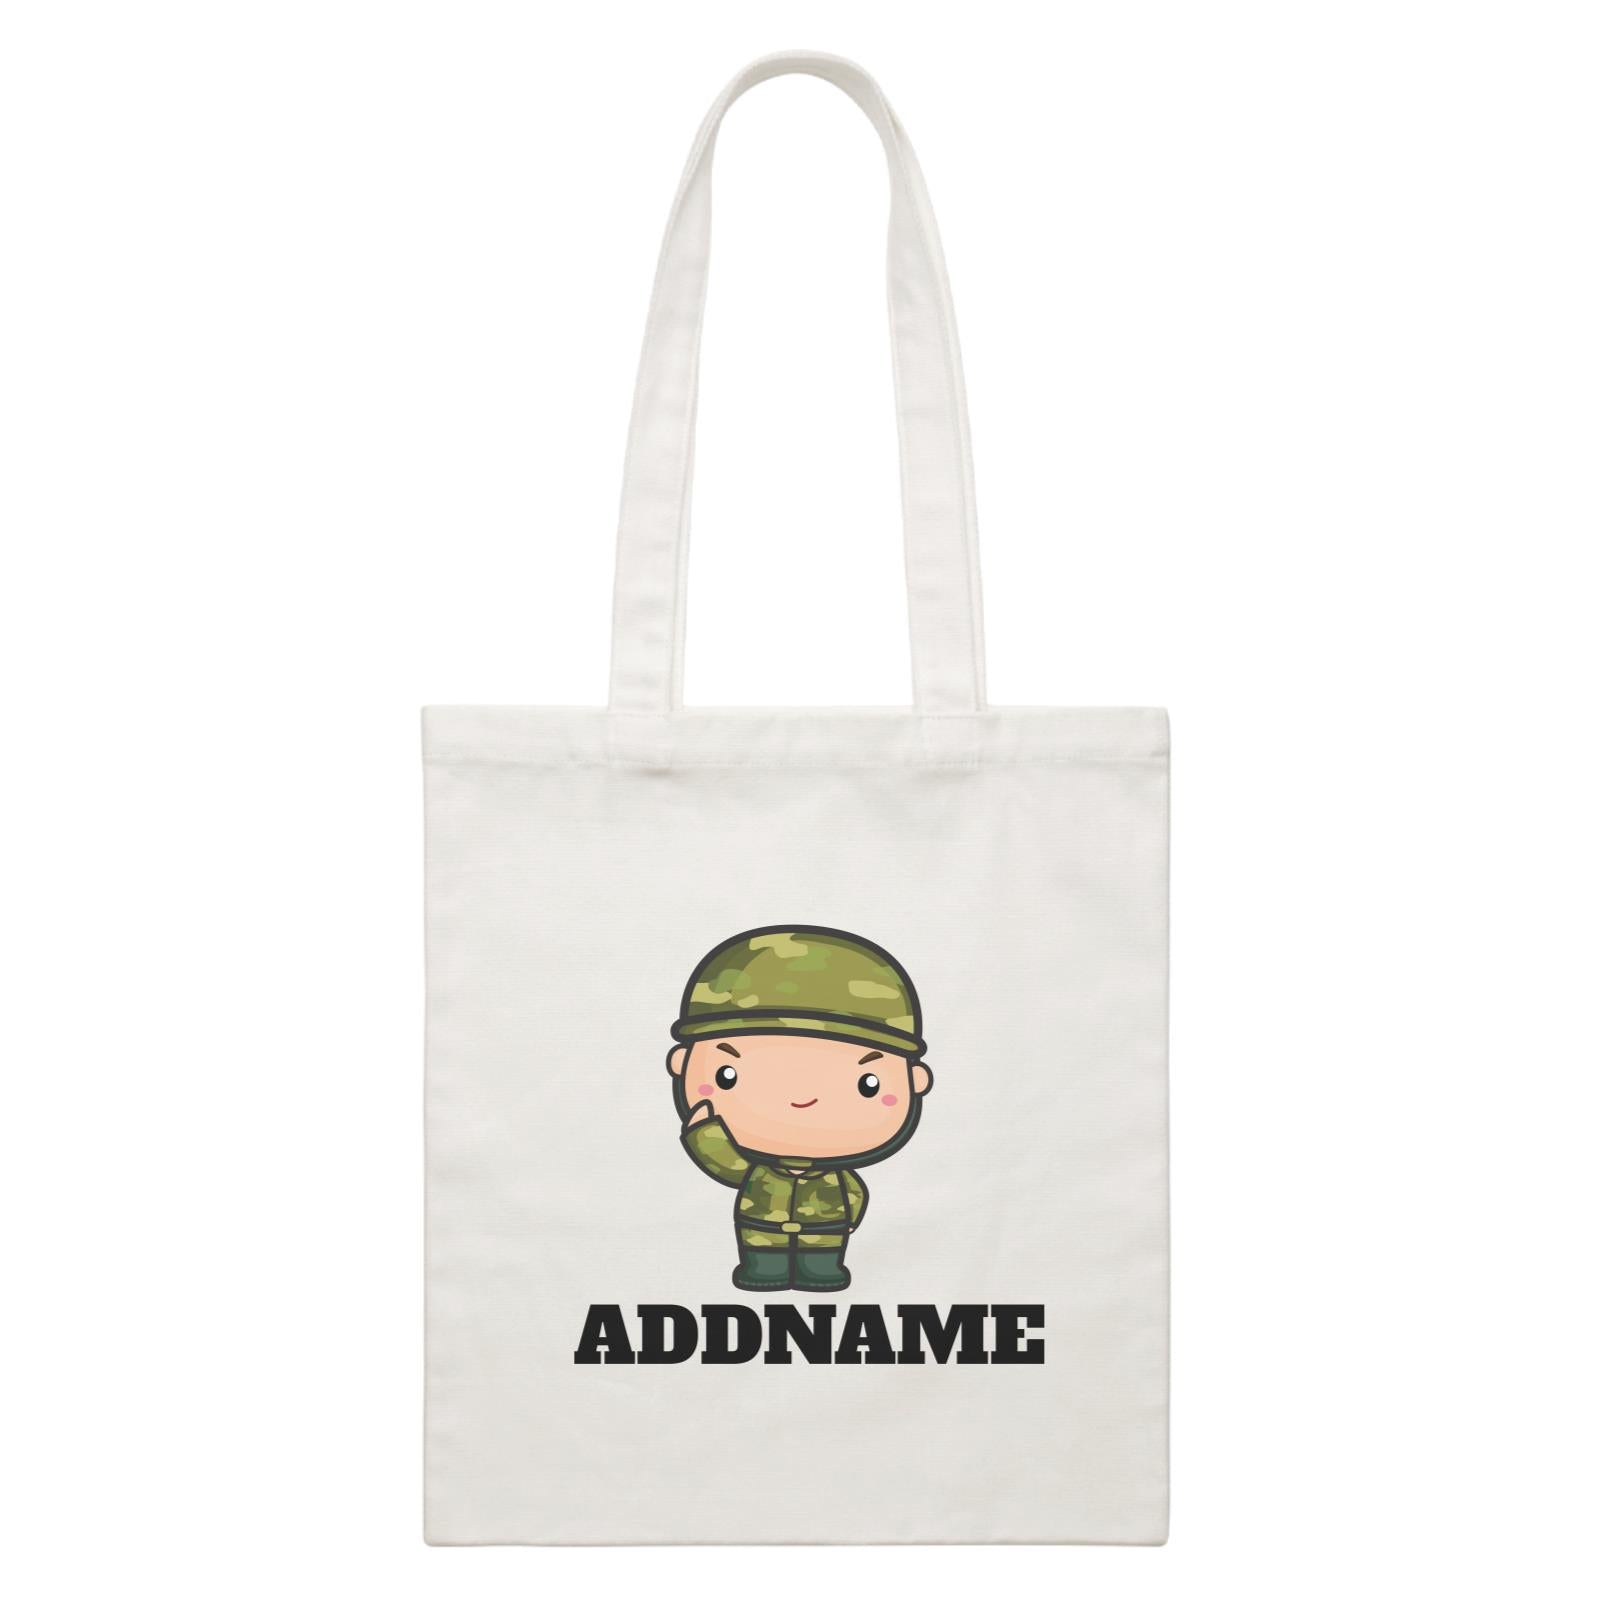 Birthday Battle Theme Army Soldier Boy Addname White Canvas Bag